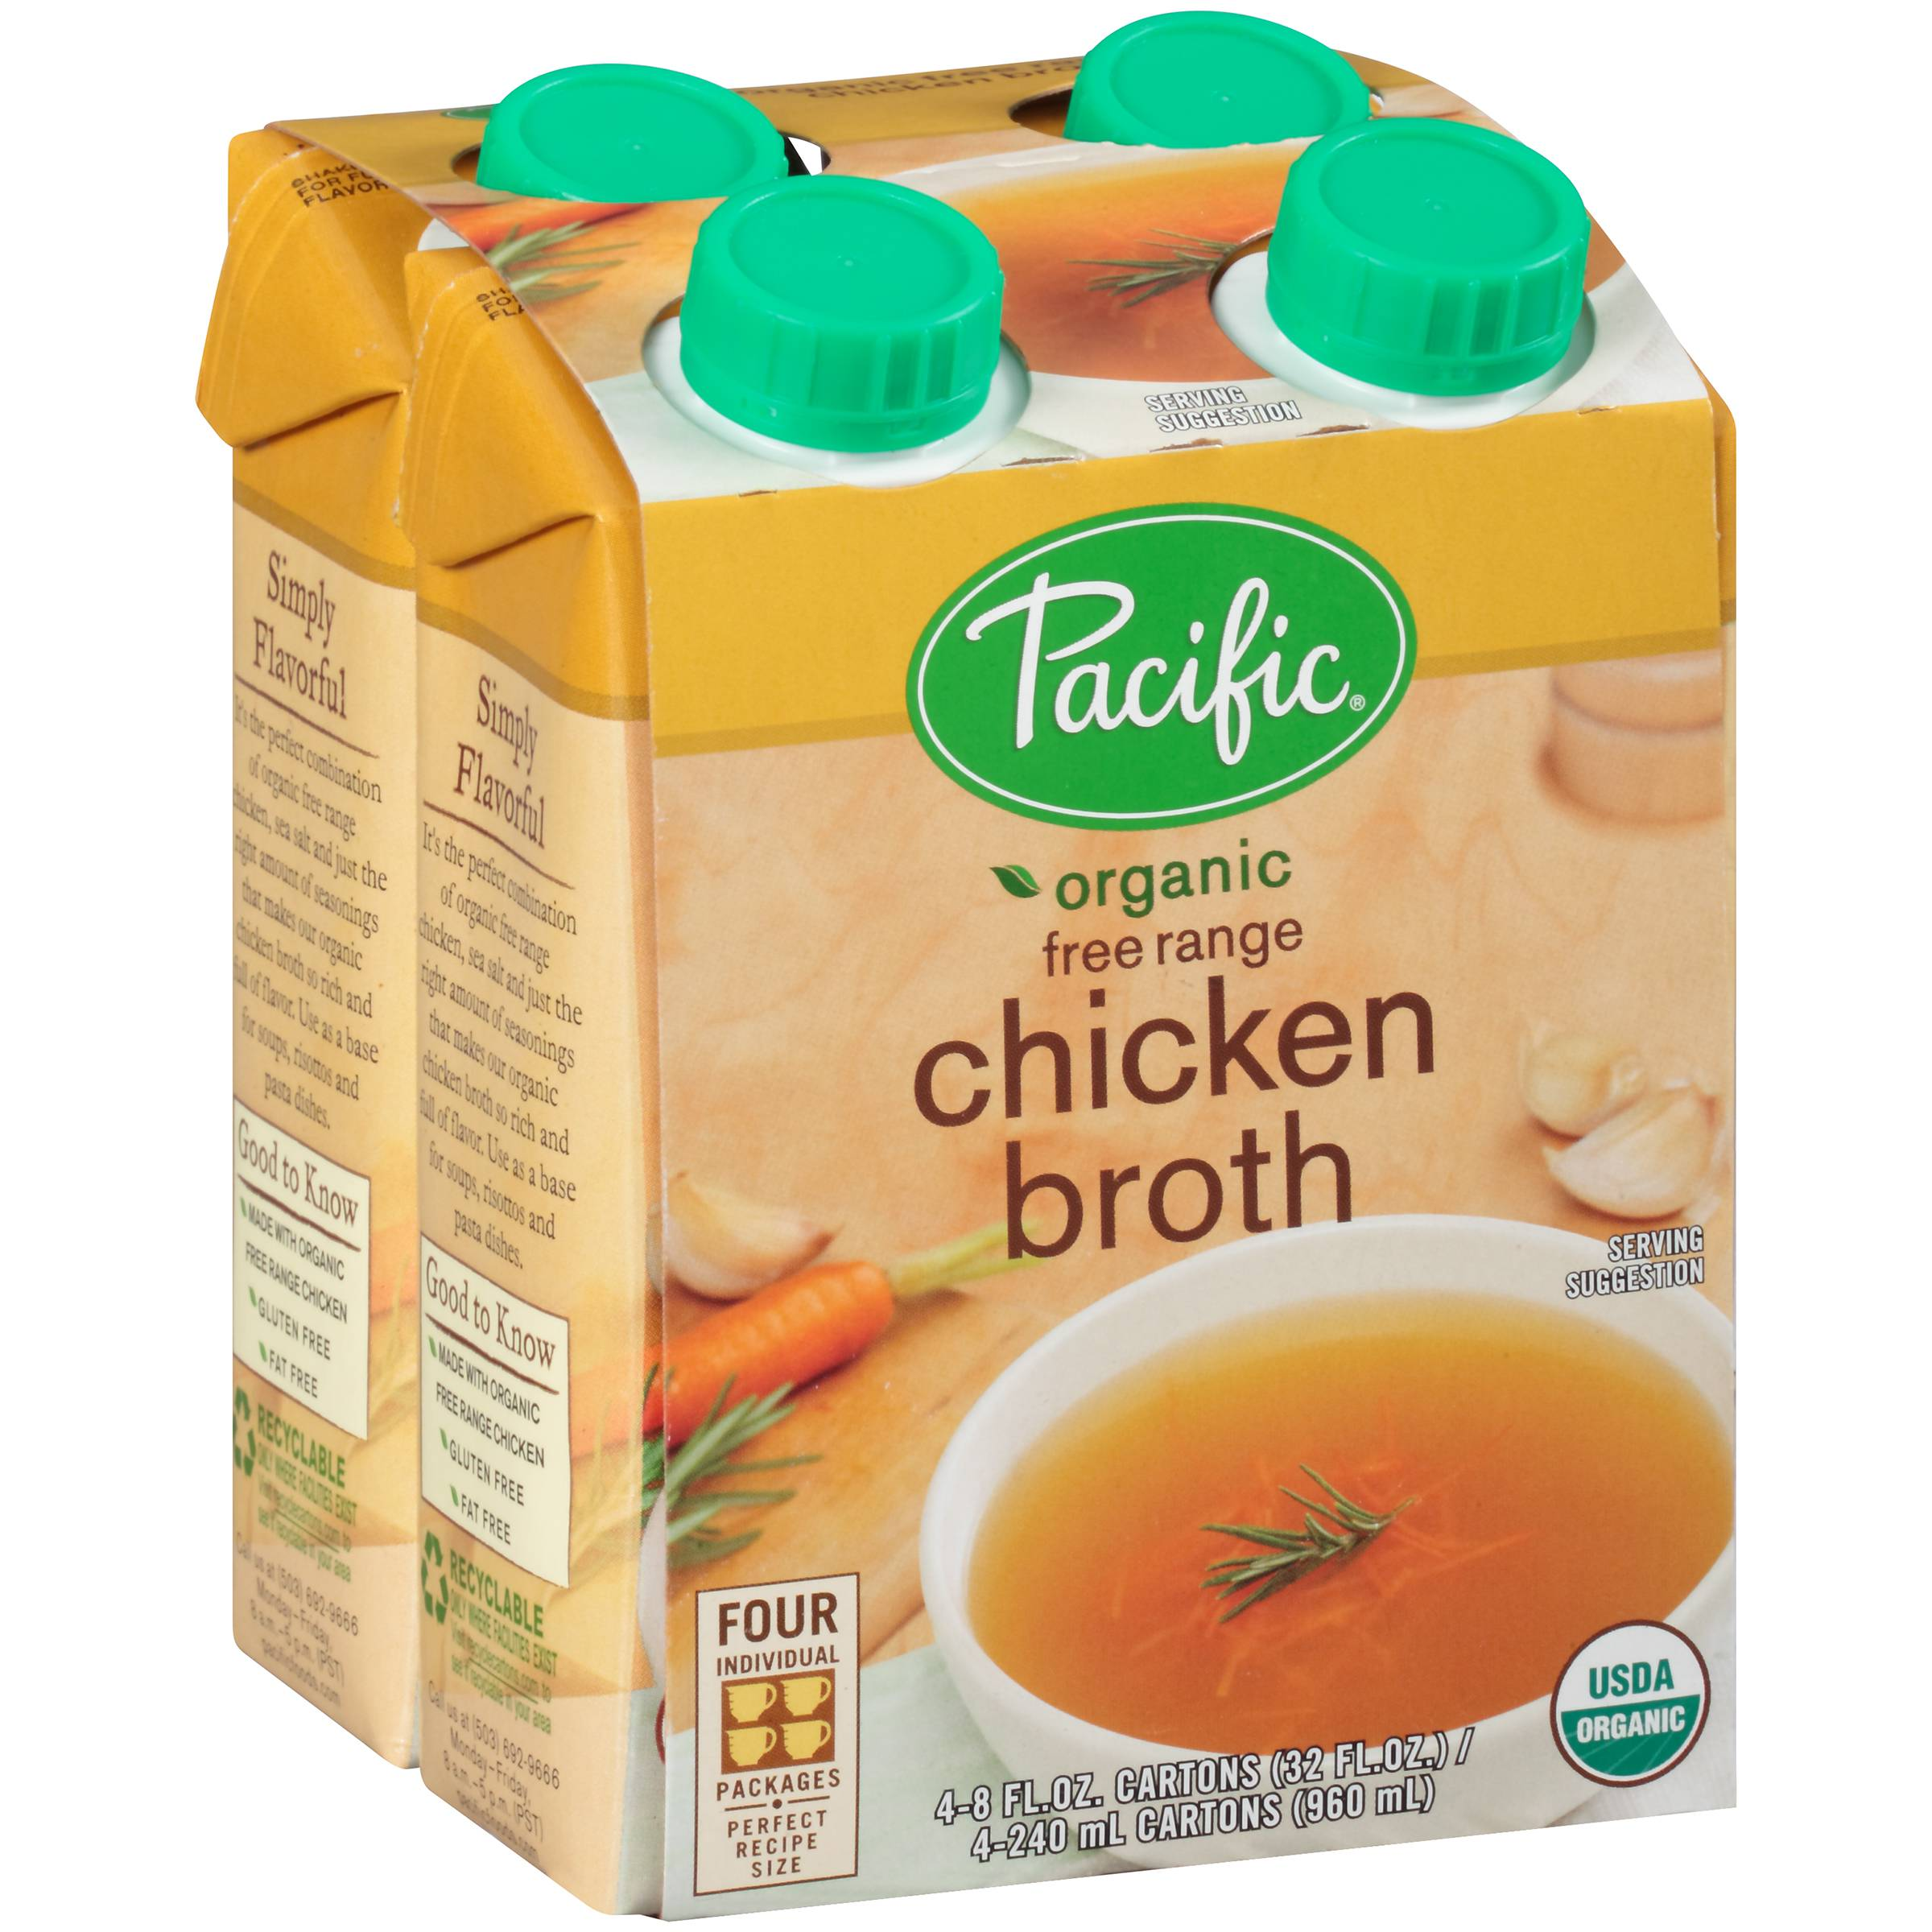 Pacific Foods Organic Free Range Chicken Broth 4Count (PACK OF 6)